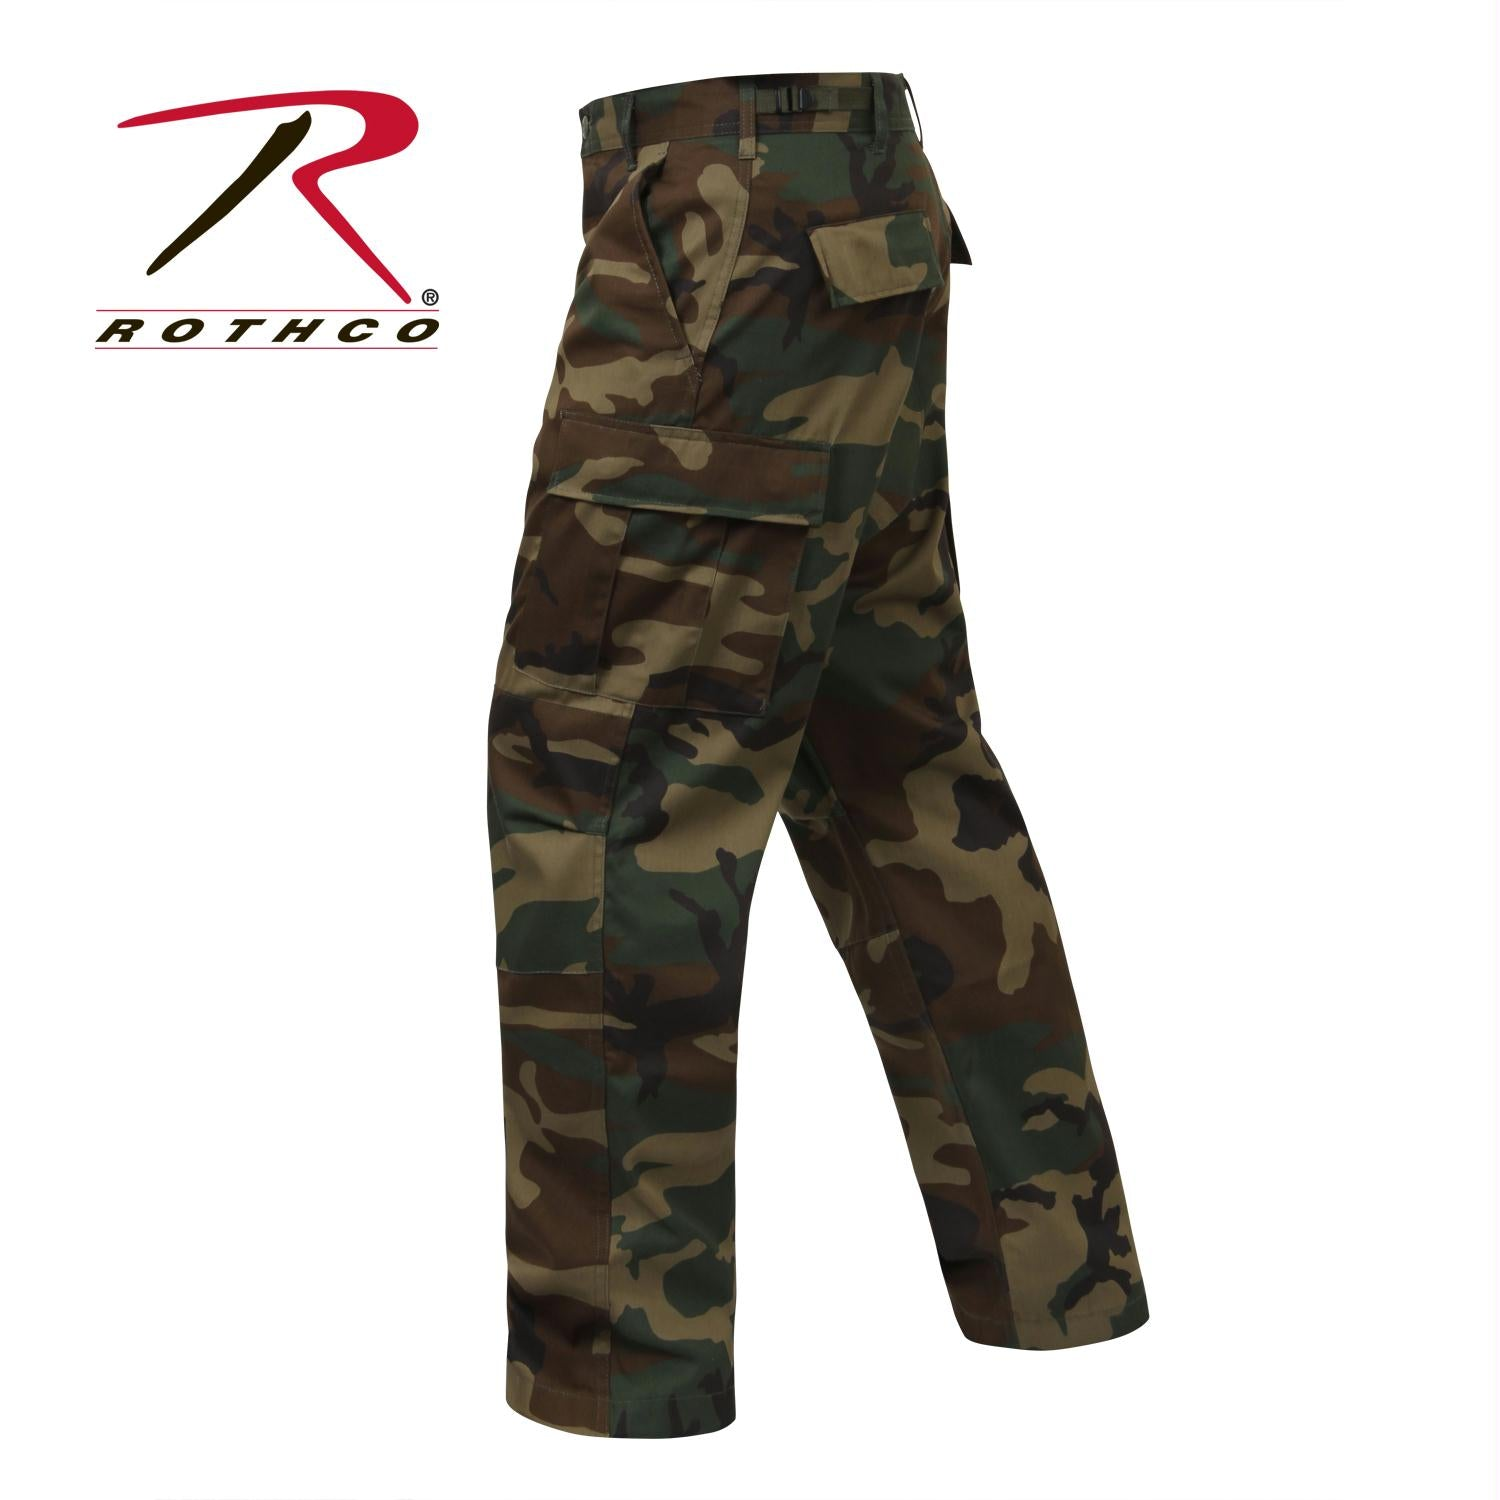 Rothco Relaxed Fit Zipper Fly BDU Pants - Woodland Camo / S